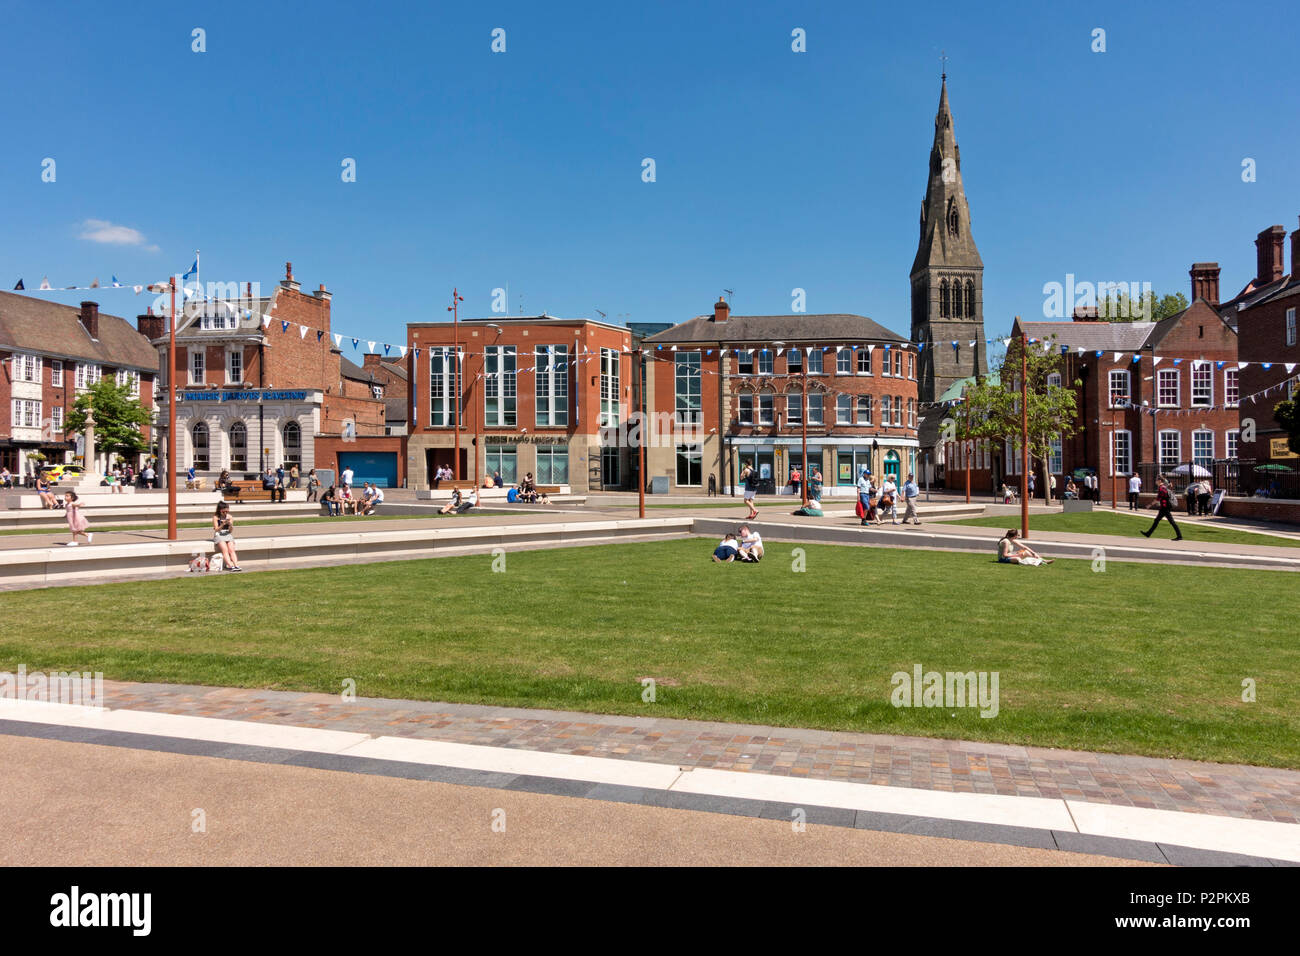 A sunny day in Jubilee Square, a green open space in the centre of Leicester City, England, UK - Stock Image